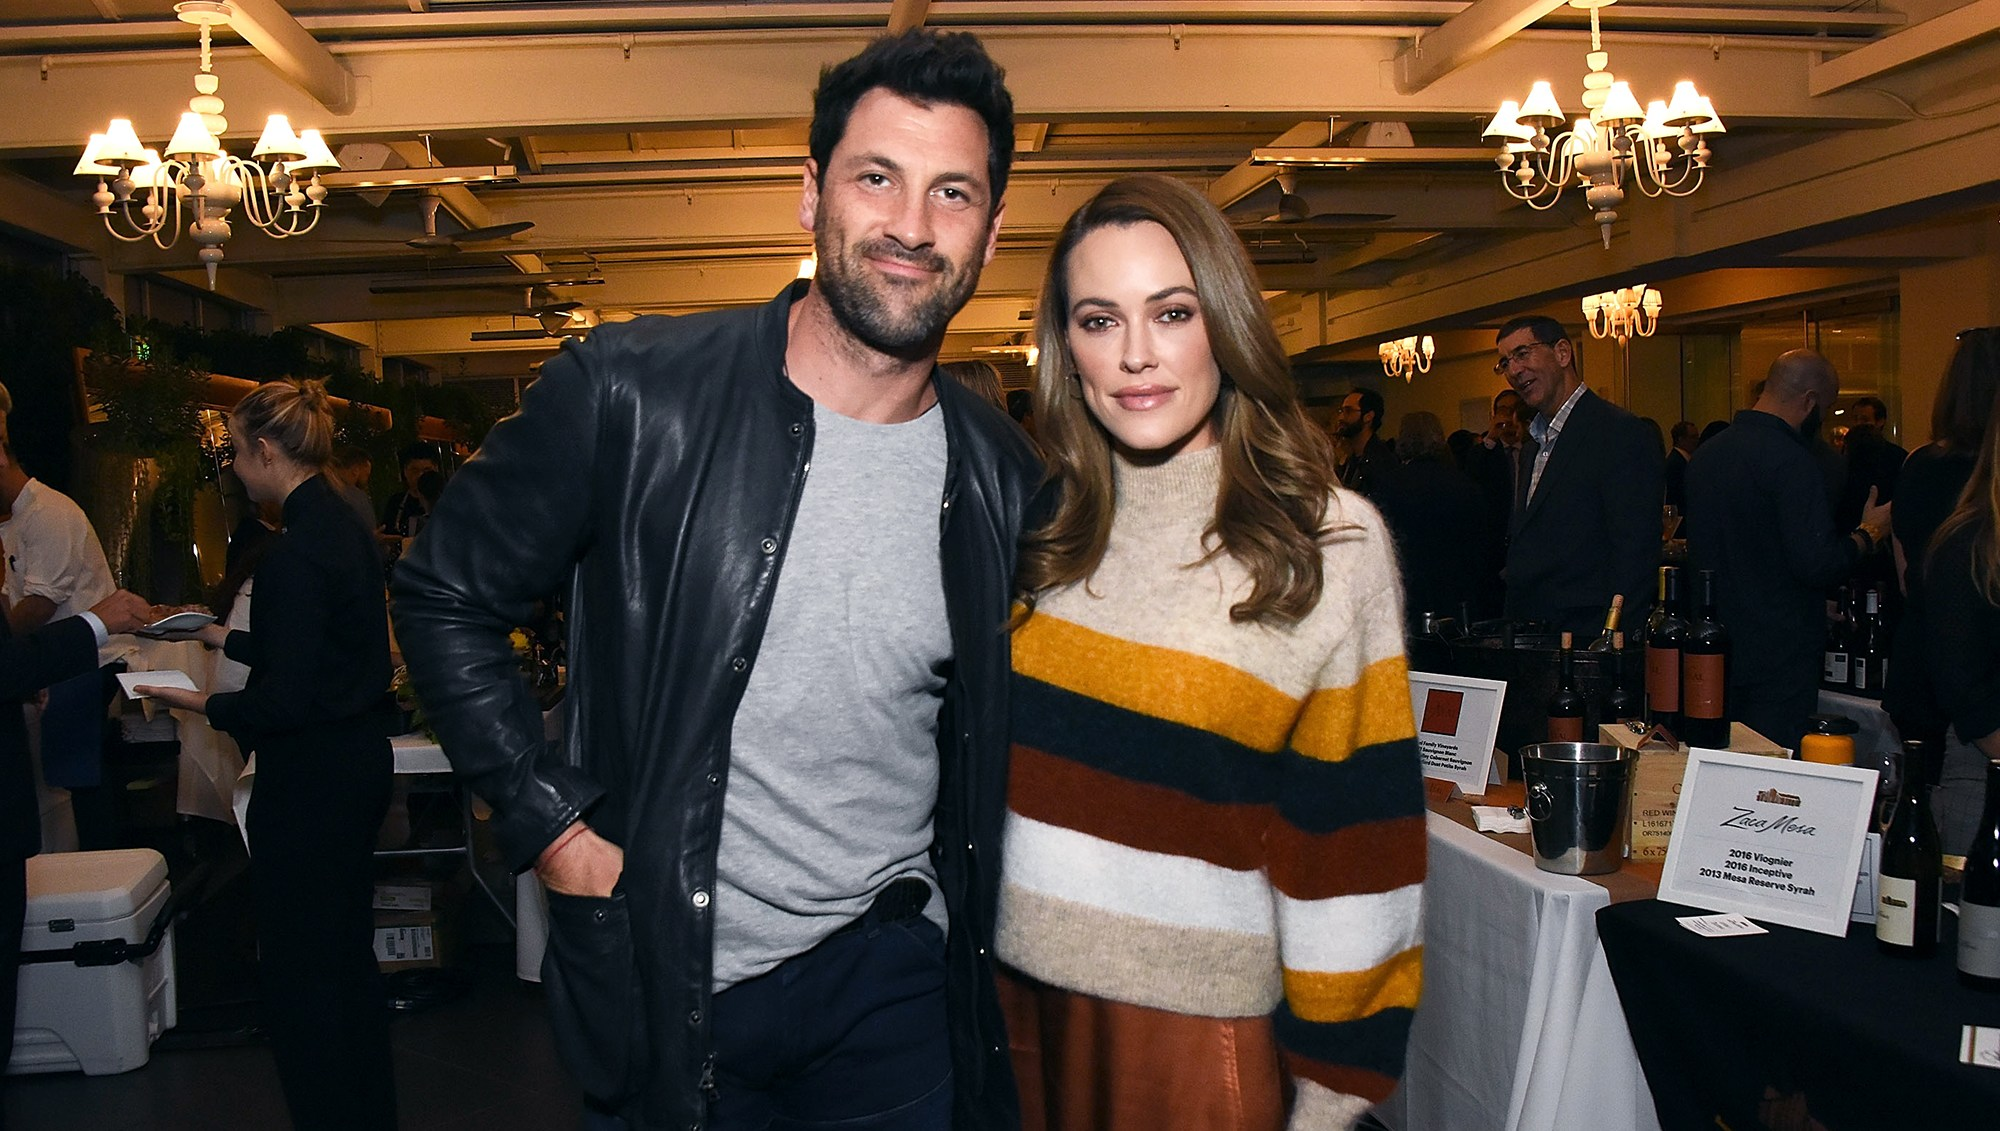 DWTS' Maksim Chmerkovskiy Knows Why Some Parents Are Unhappy